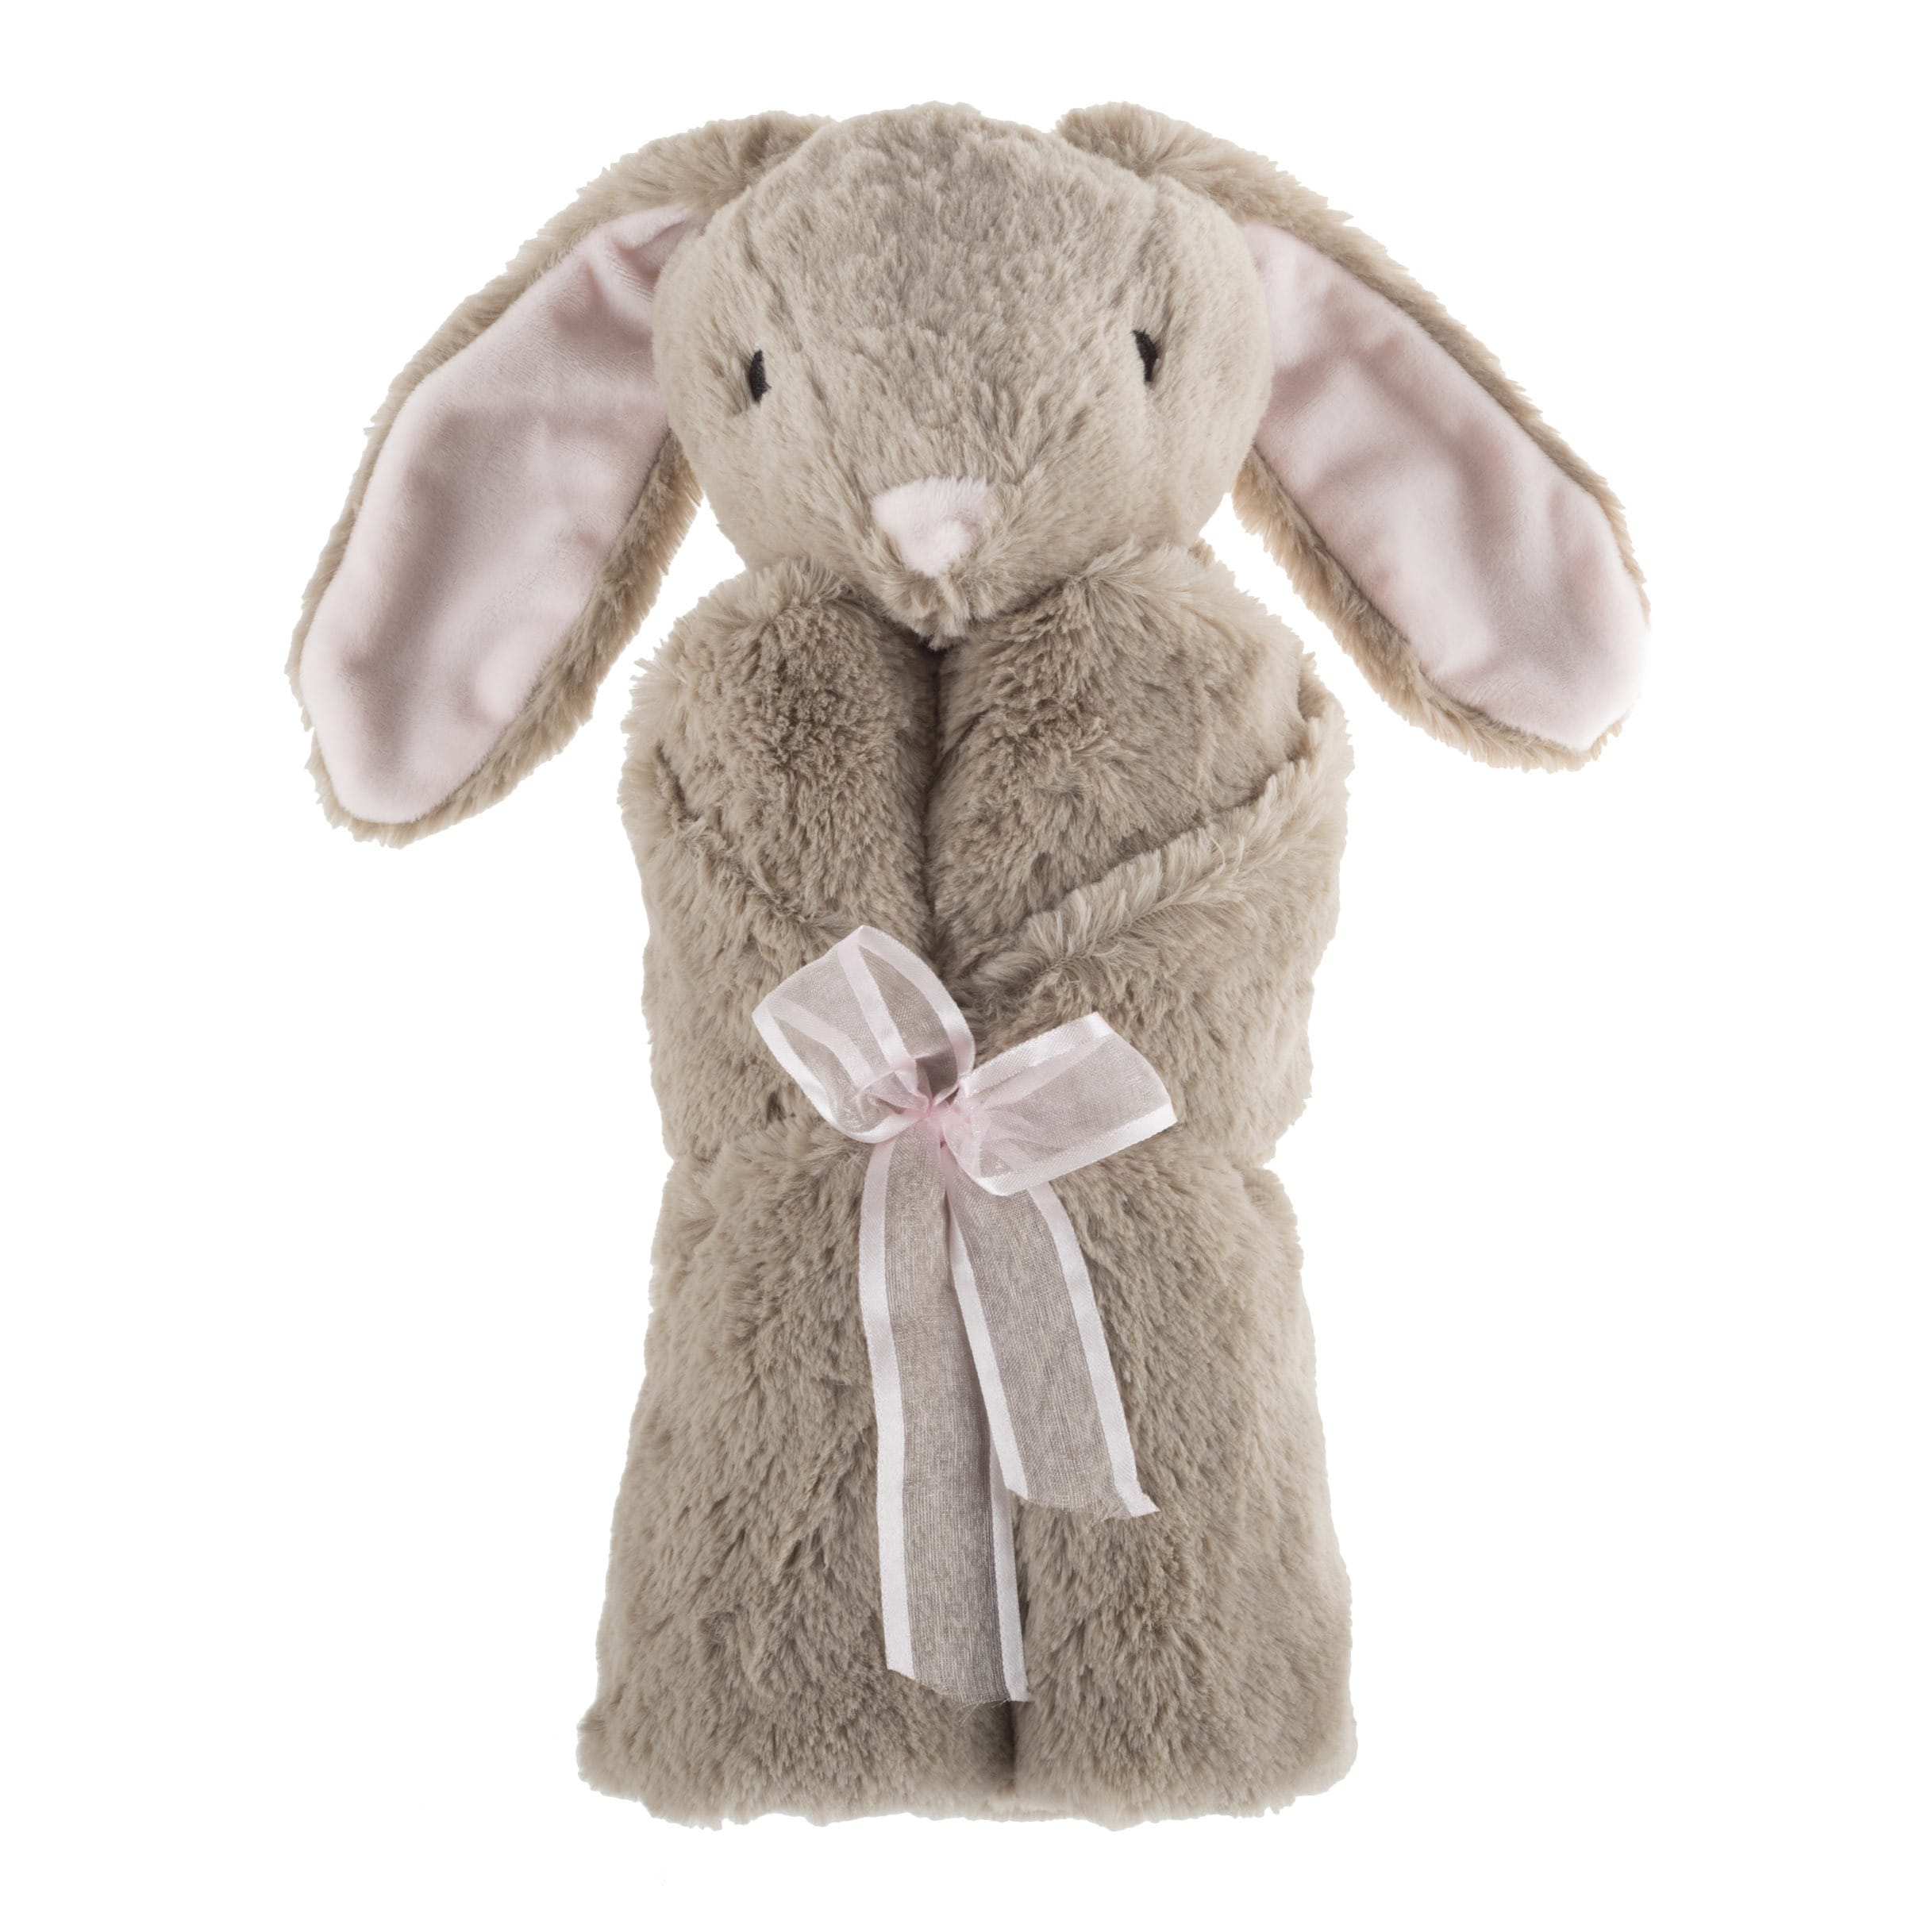 Shop Baby Security Blanket Stuffed Animal Soft And Cuddly For Play